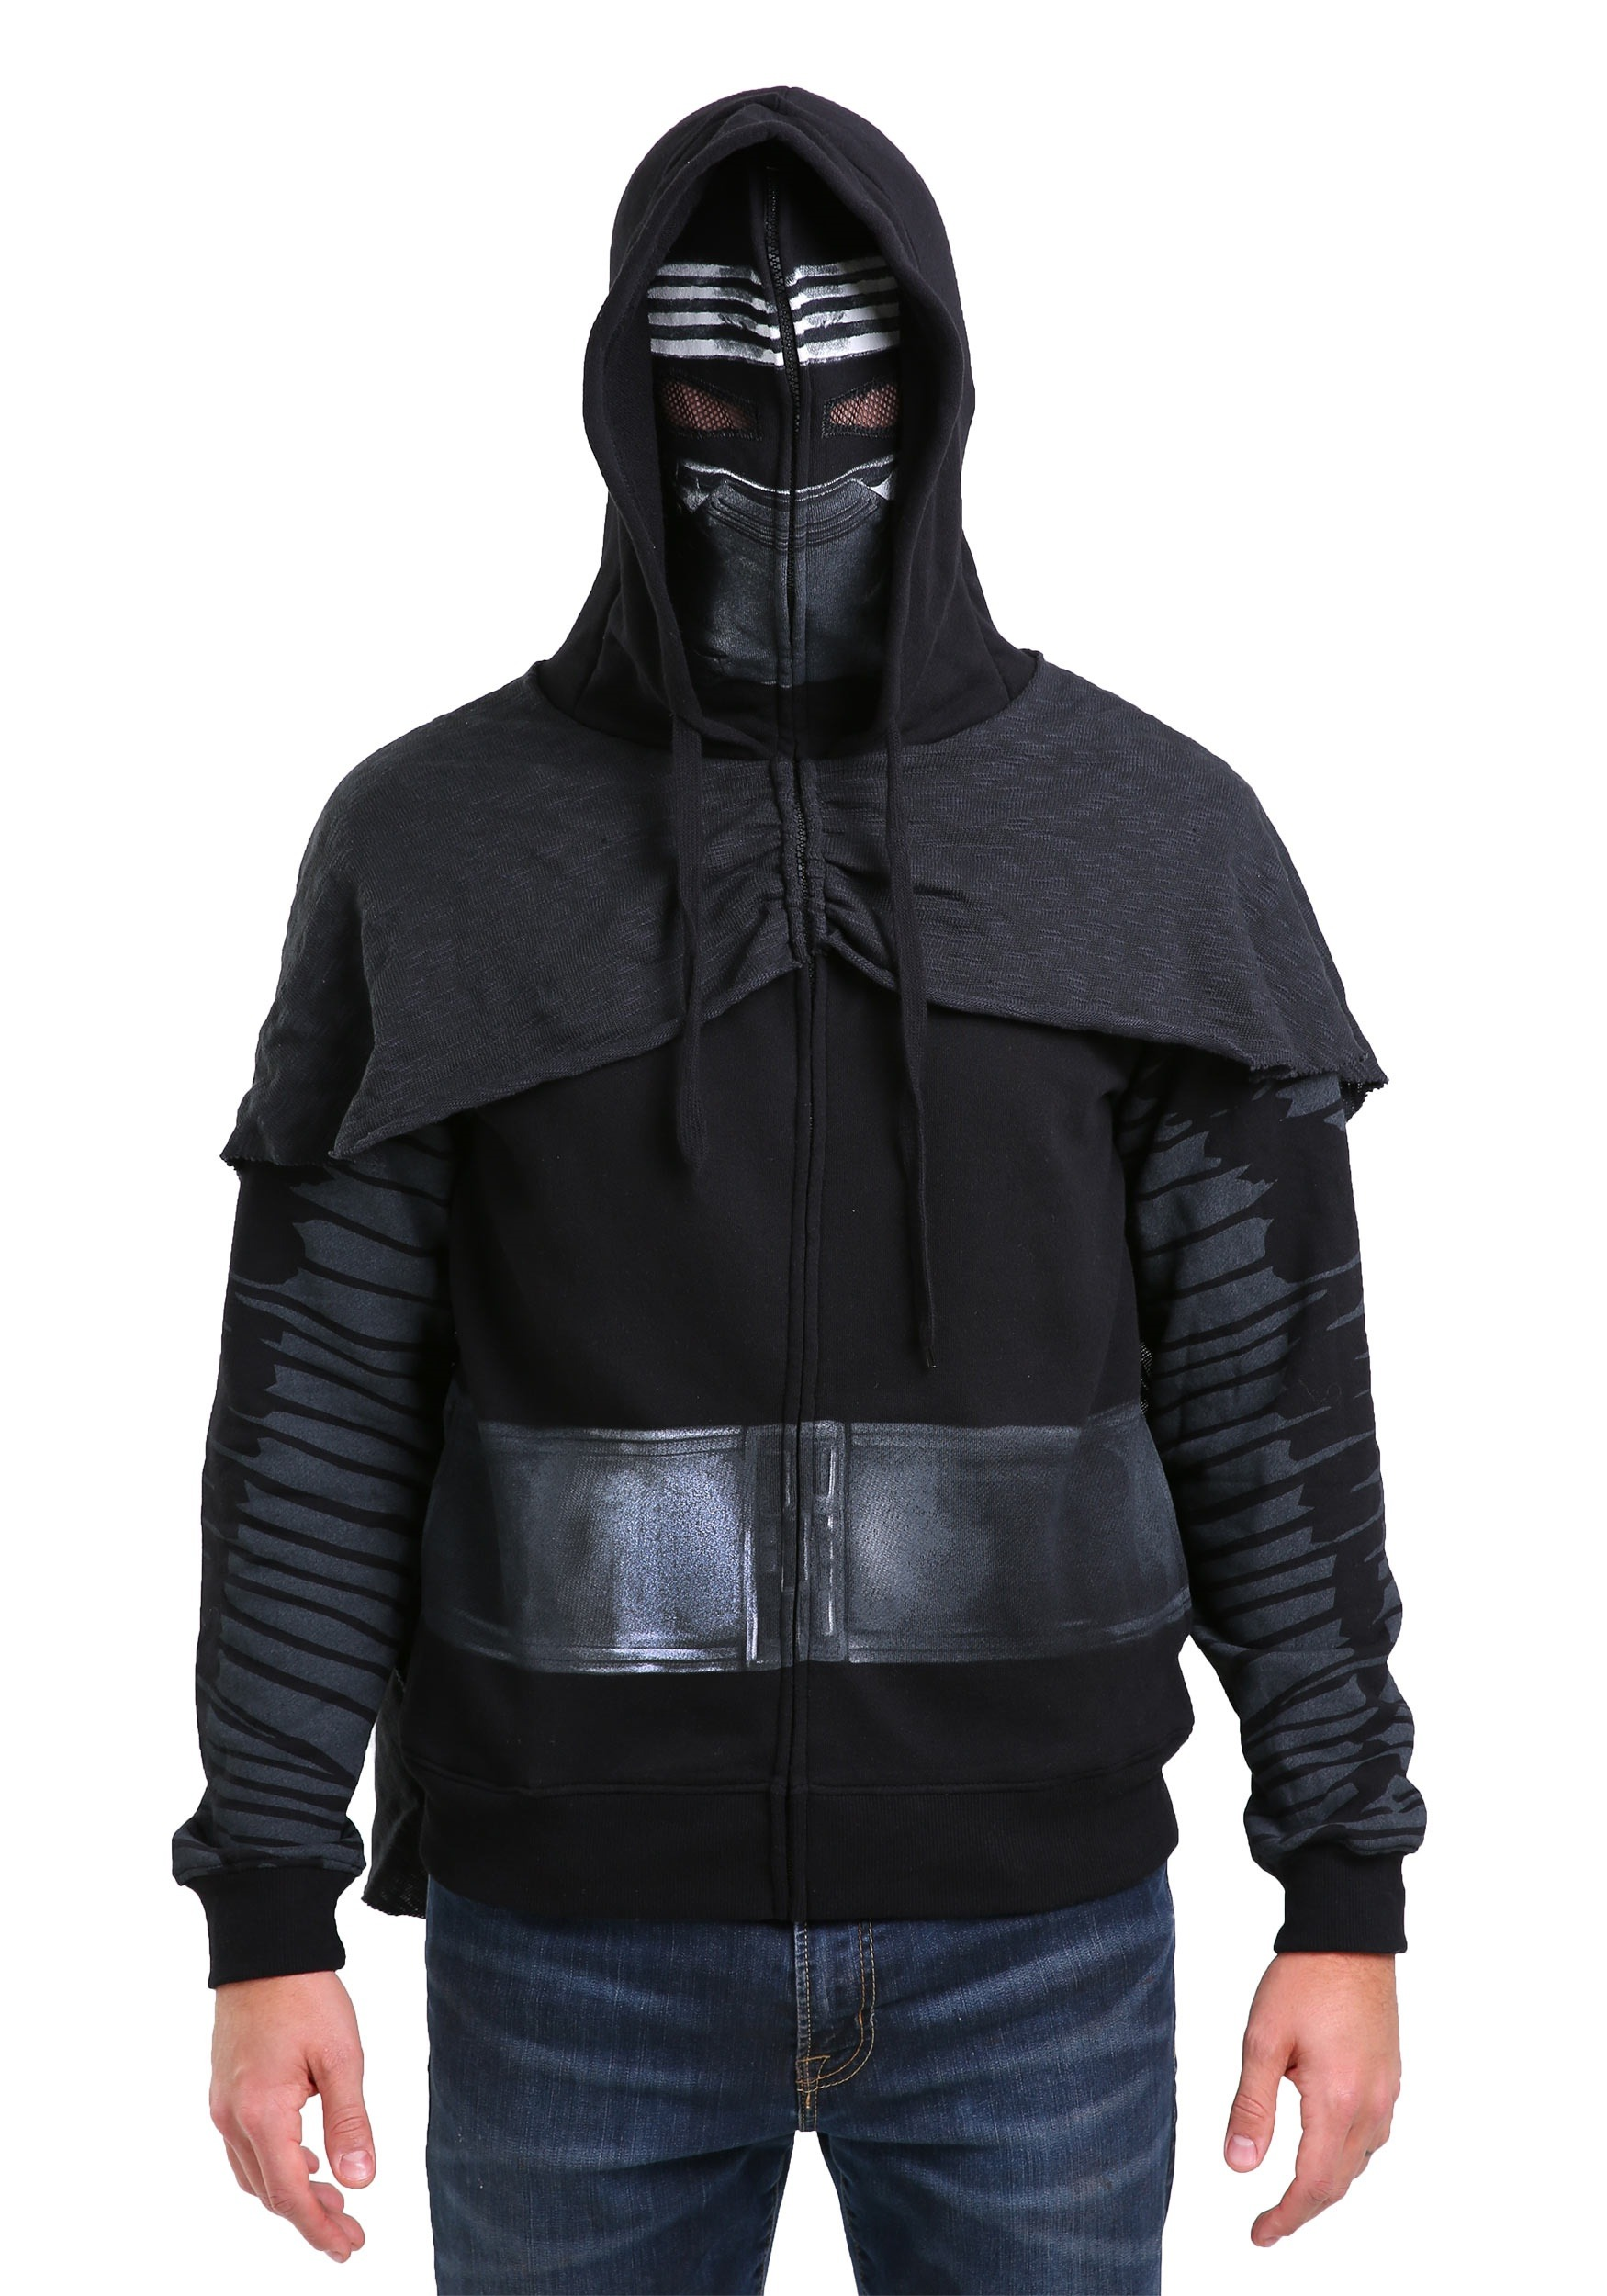 Image of I Am Kylo Ren Adult Hoodie Star Wars Costume